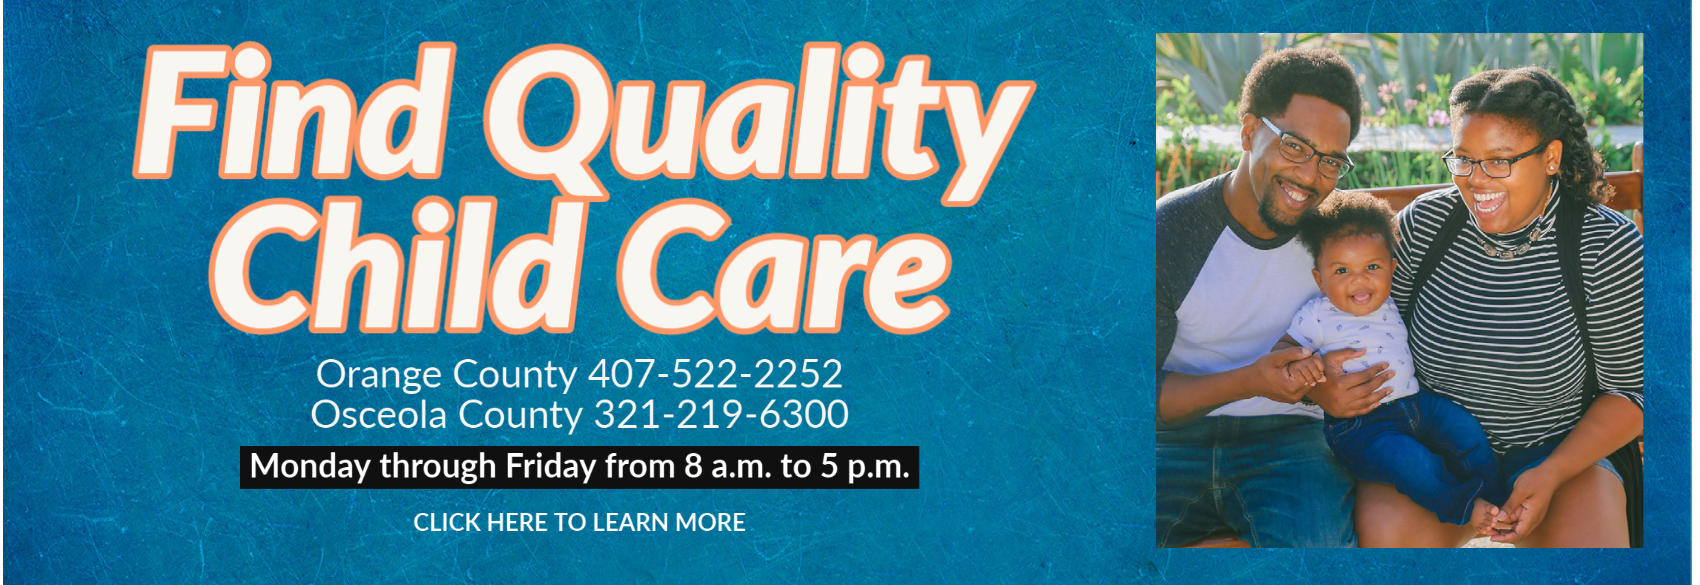 Find Quality Child Care